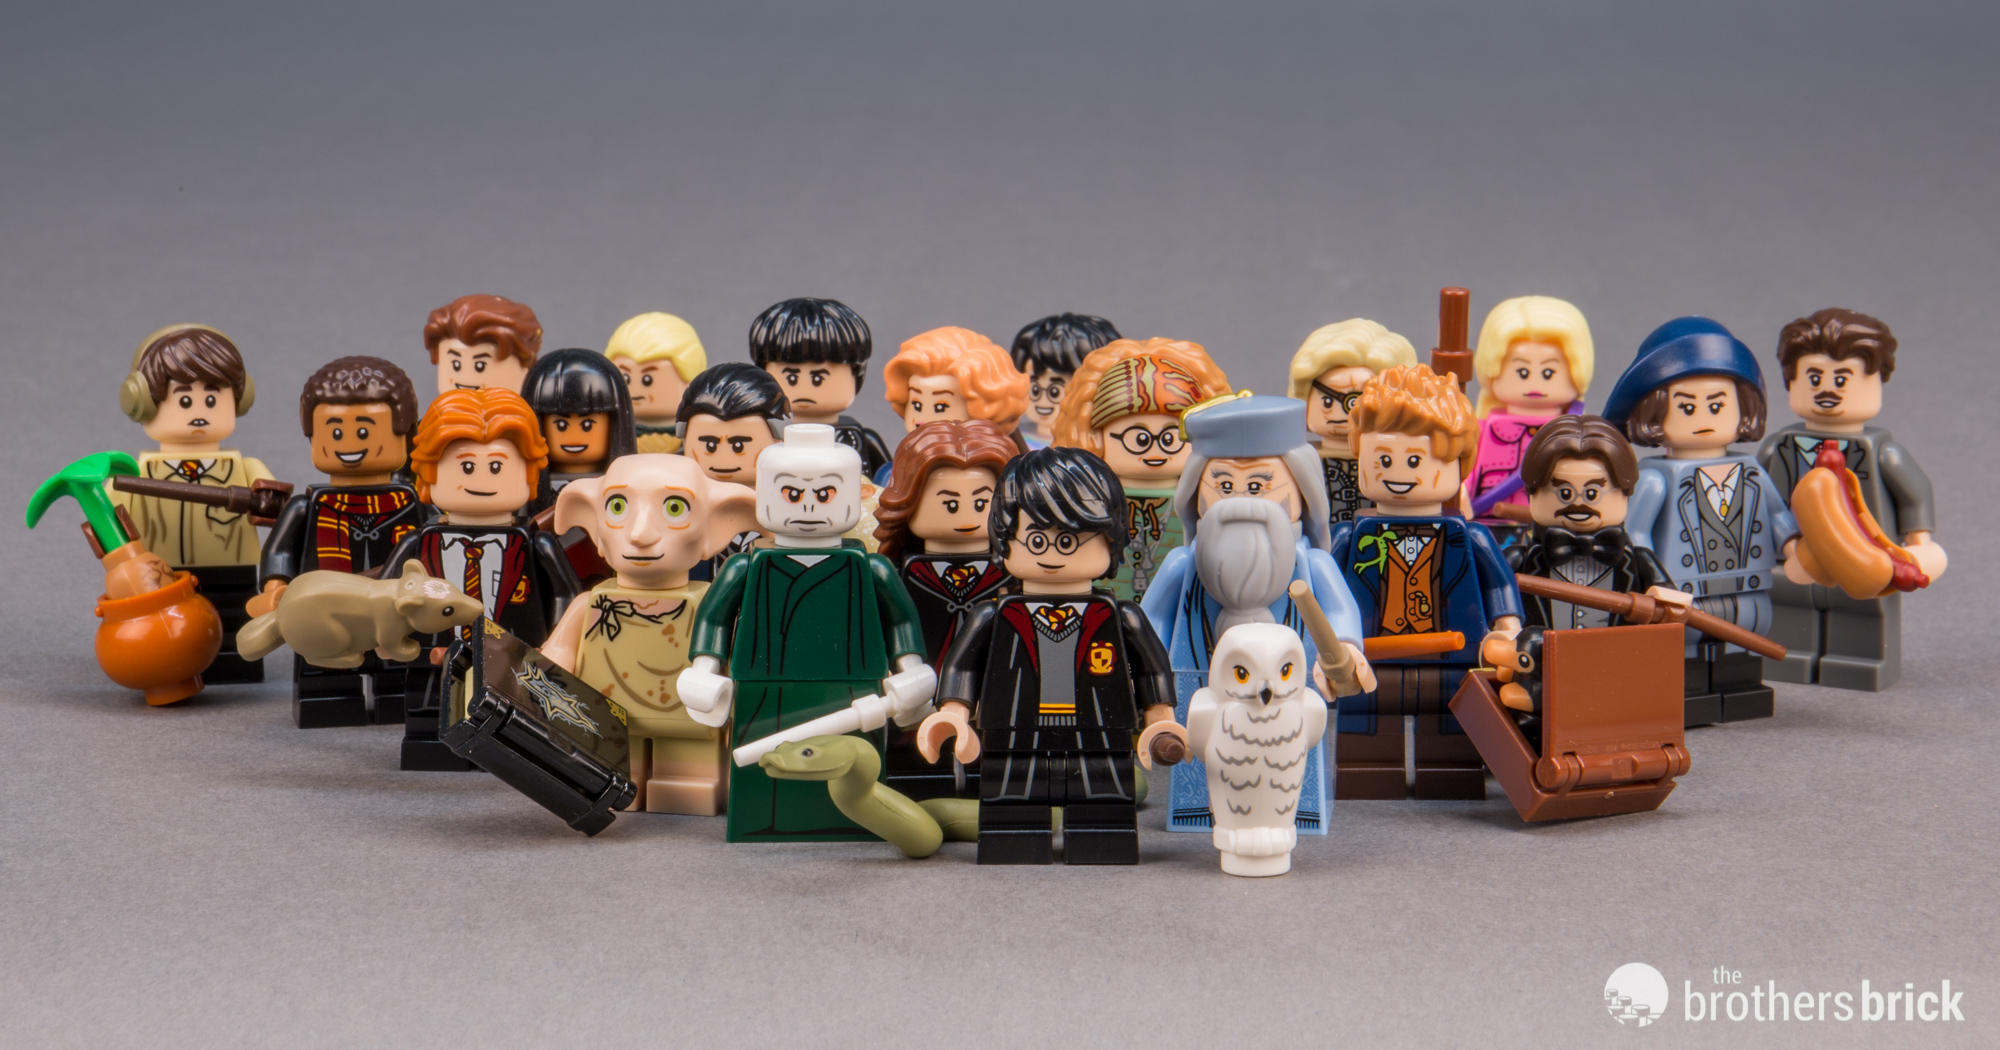 Lego 71022 Harry Potter And Fantastic Beasts Collectible Minifigures Review The Brothers Brick The Brothers Brick